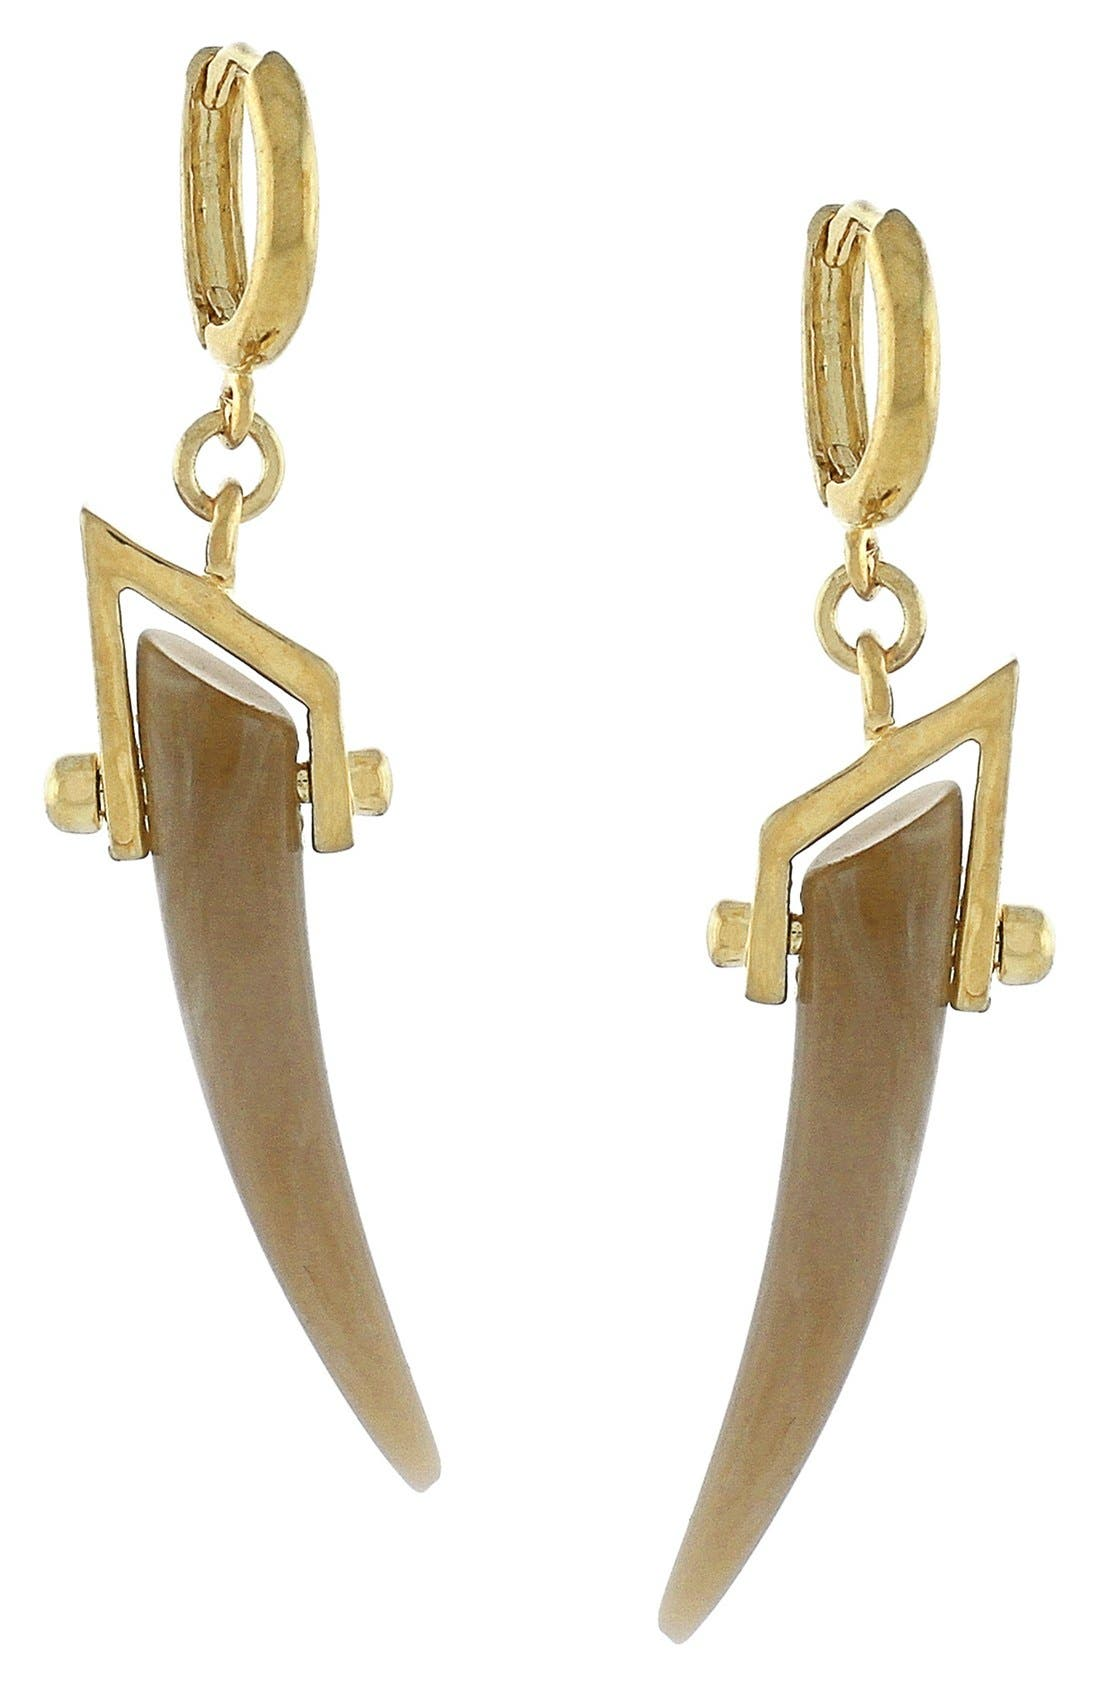 Alternate Image 1 Selected - Vince Camuto 'Serengeti Breeze' Faux Horn Drop Earrings